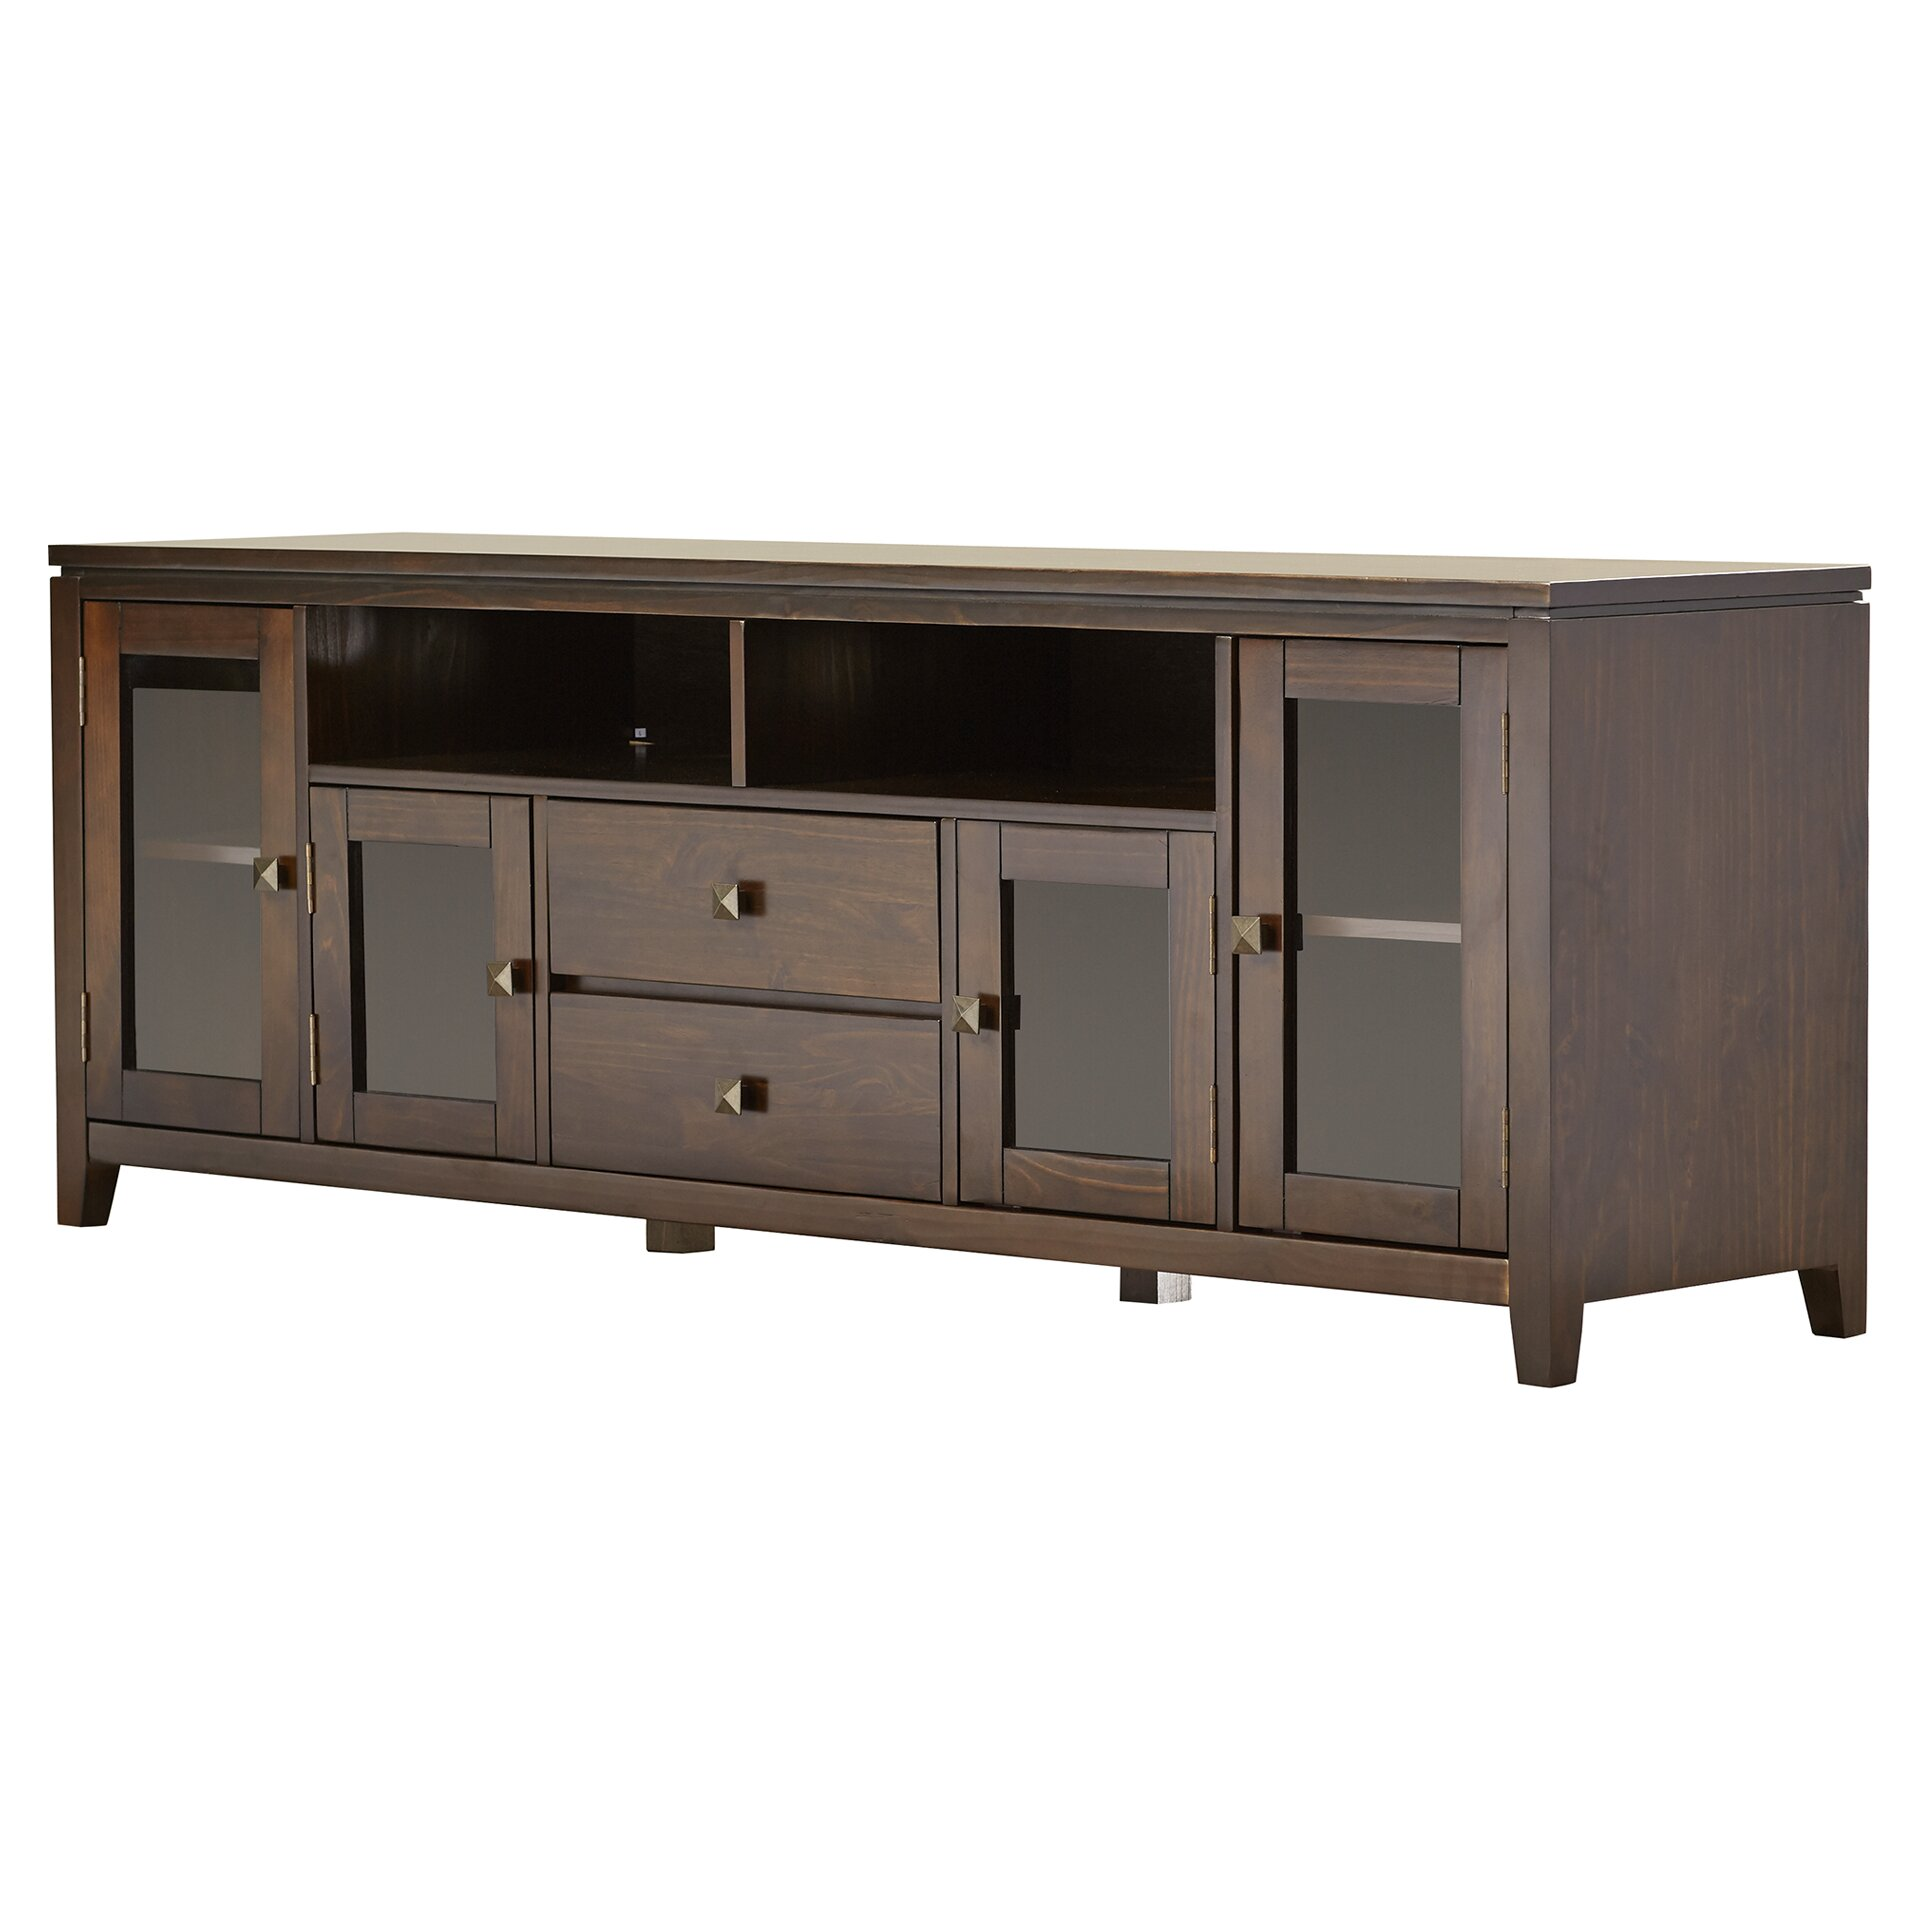 Simpli home tv stand reviews wayfair Home furniture tv stands